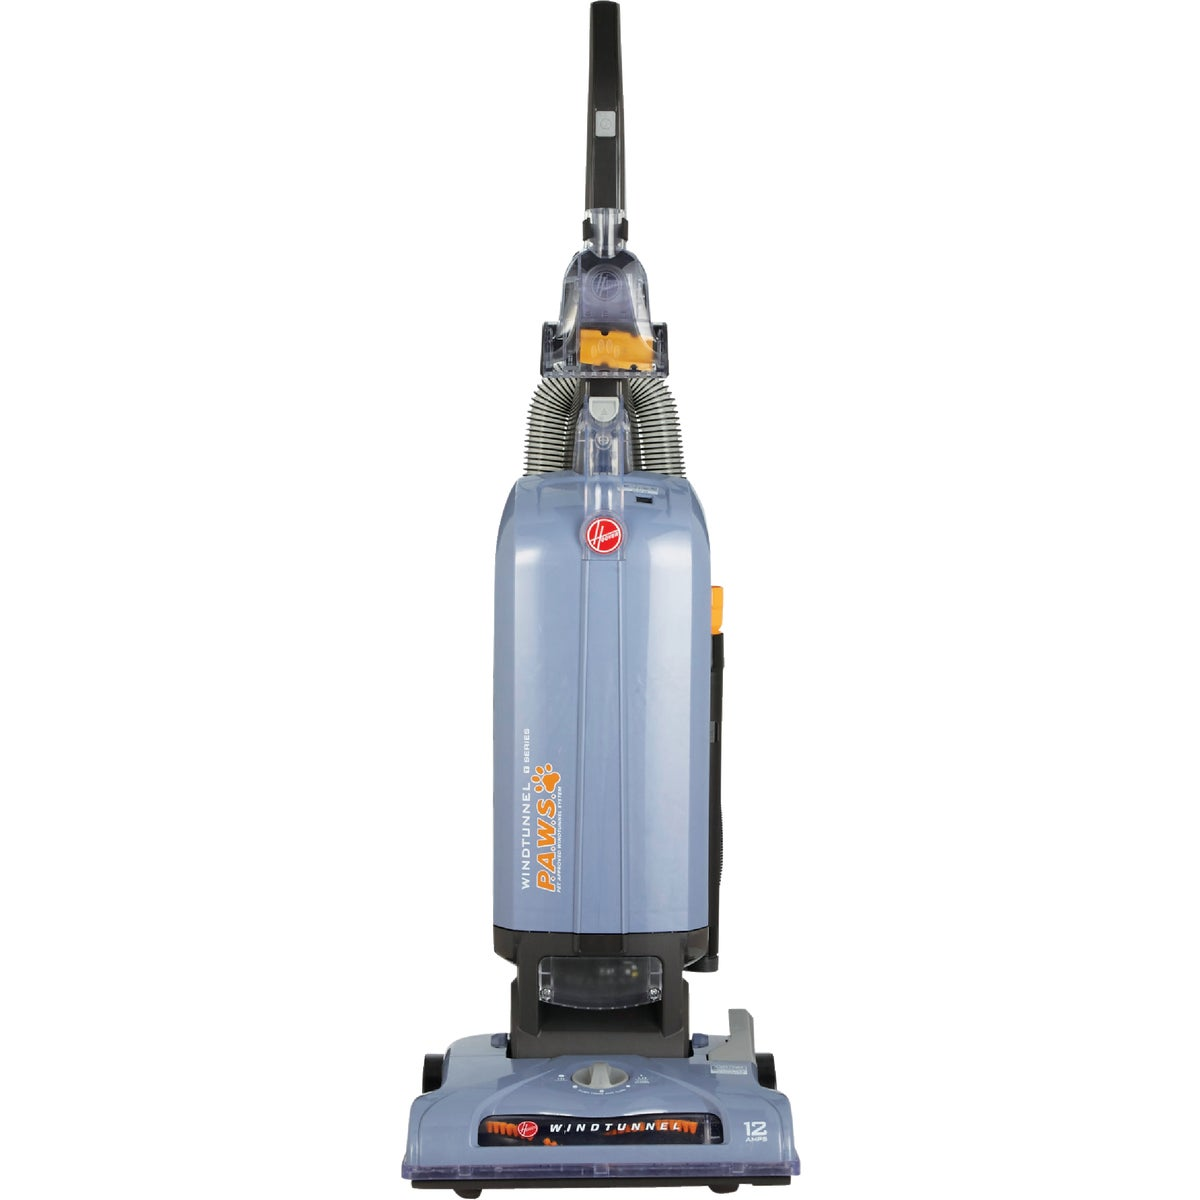 WINDTUNNL UPRIGHT VACUUM - UH30310 by Hoover Co